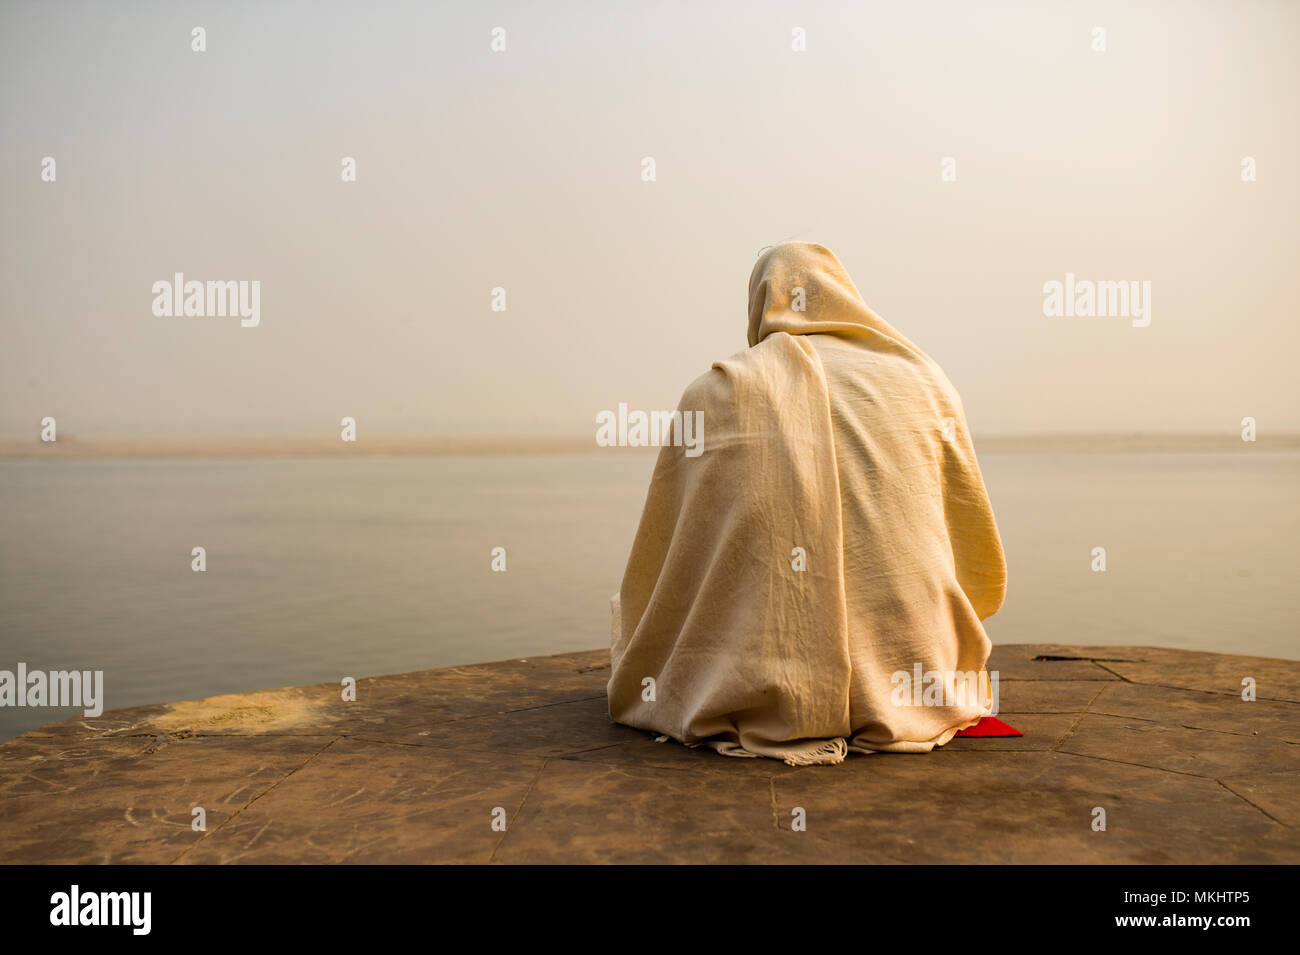 A holy man dressed in white is praying and meditating on one of the many Ghats of Varanasi in front of the sacred river Ganges, India. - Stock Image